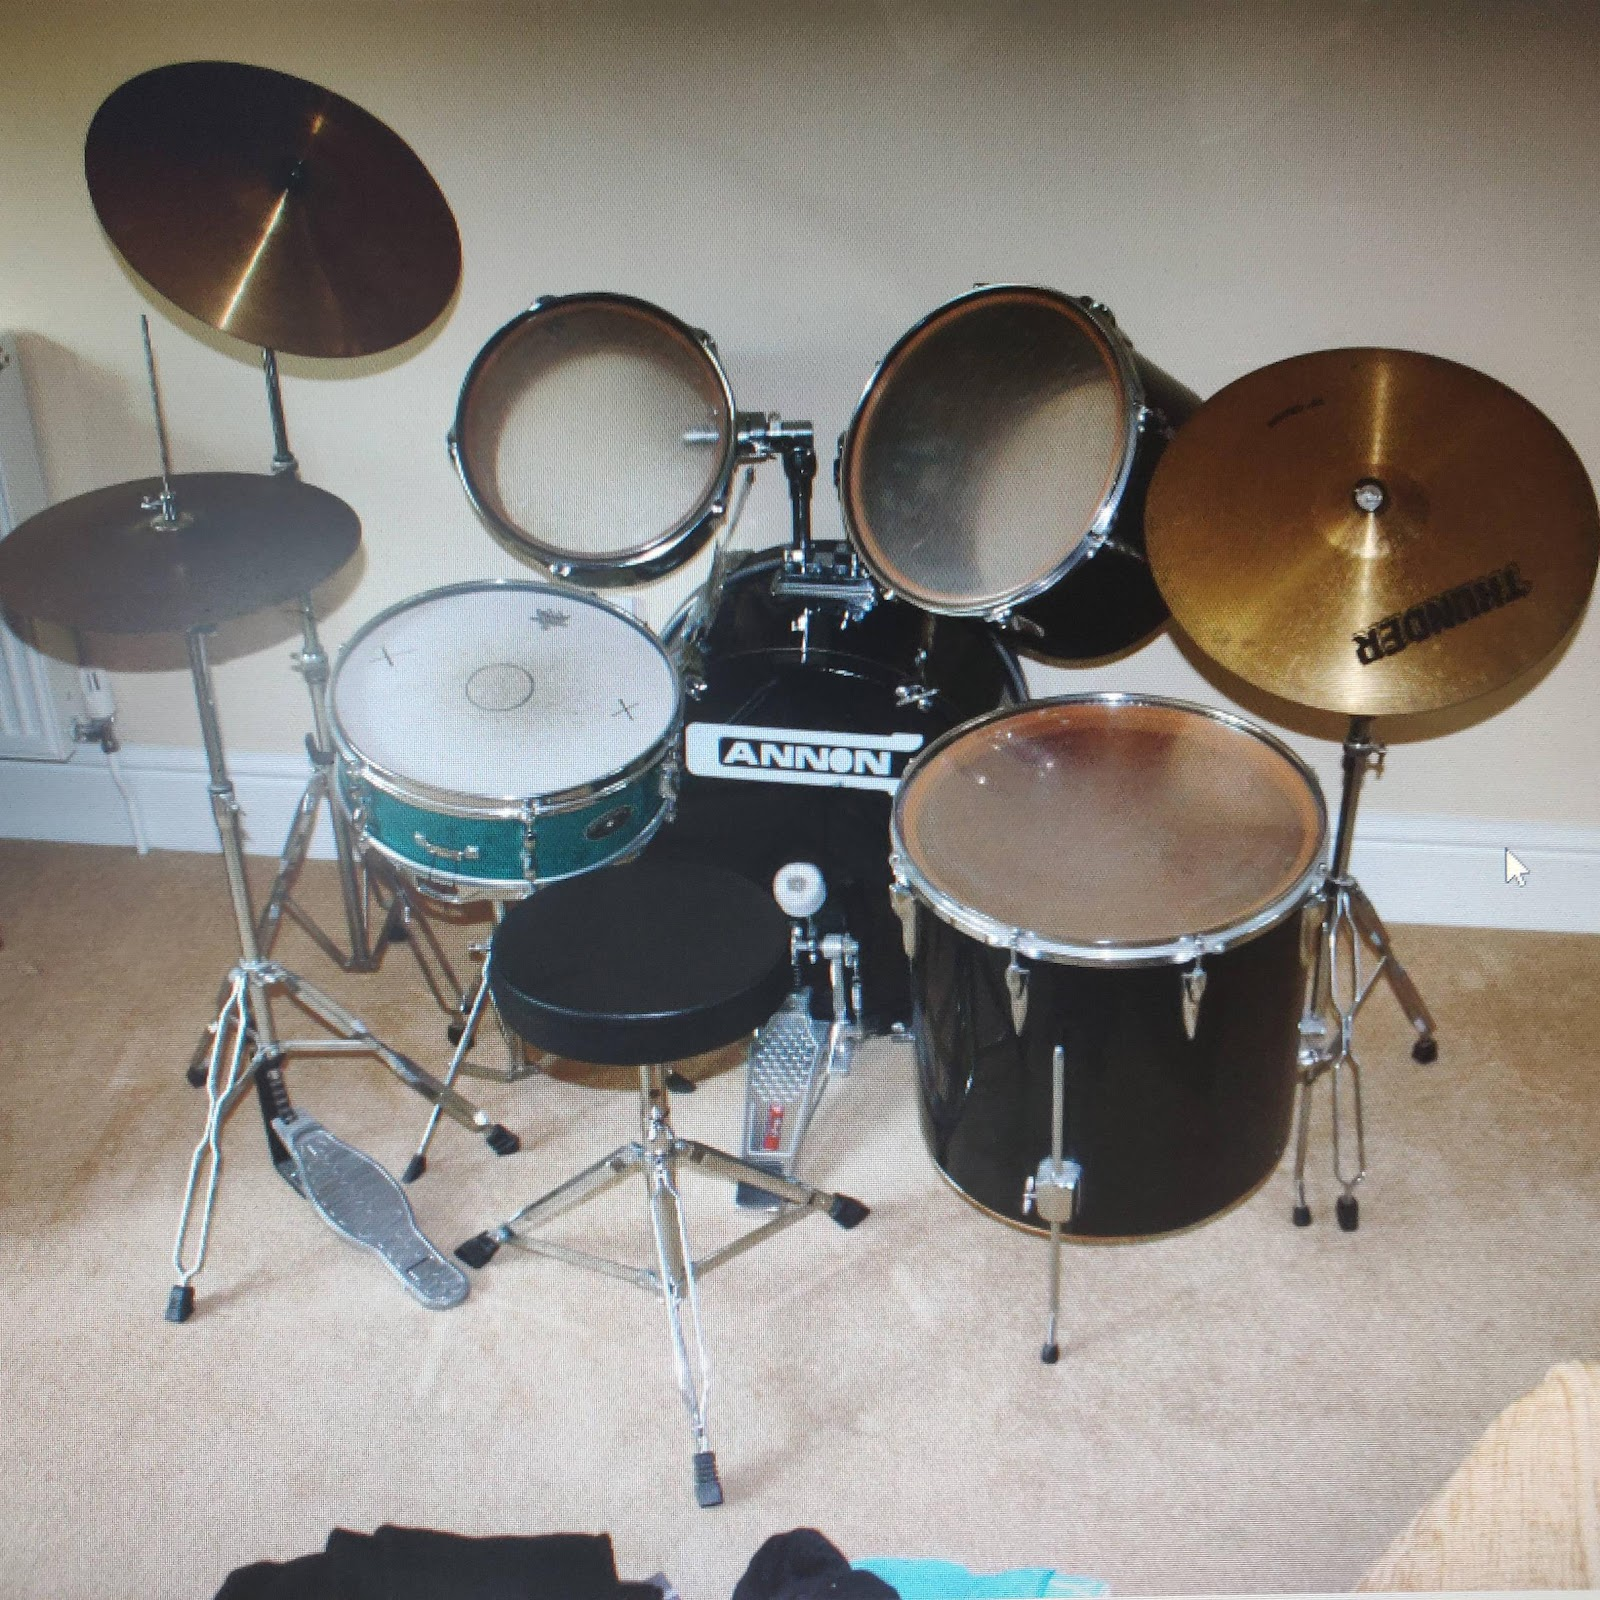 Found a picture of my old drum kit. : drums